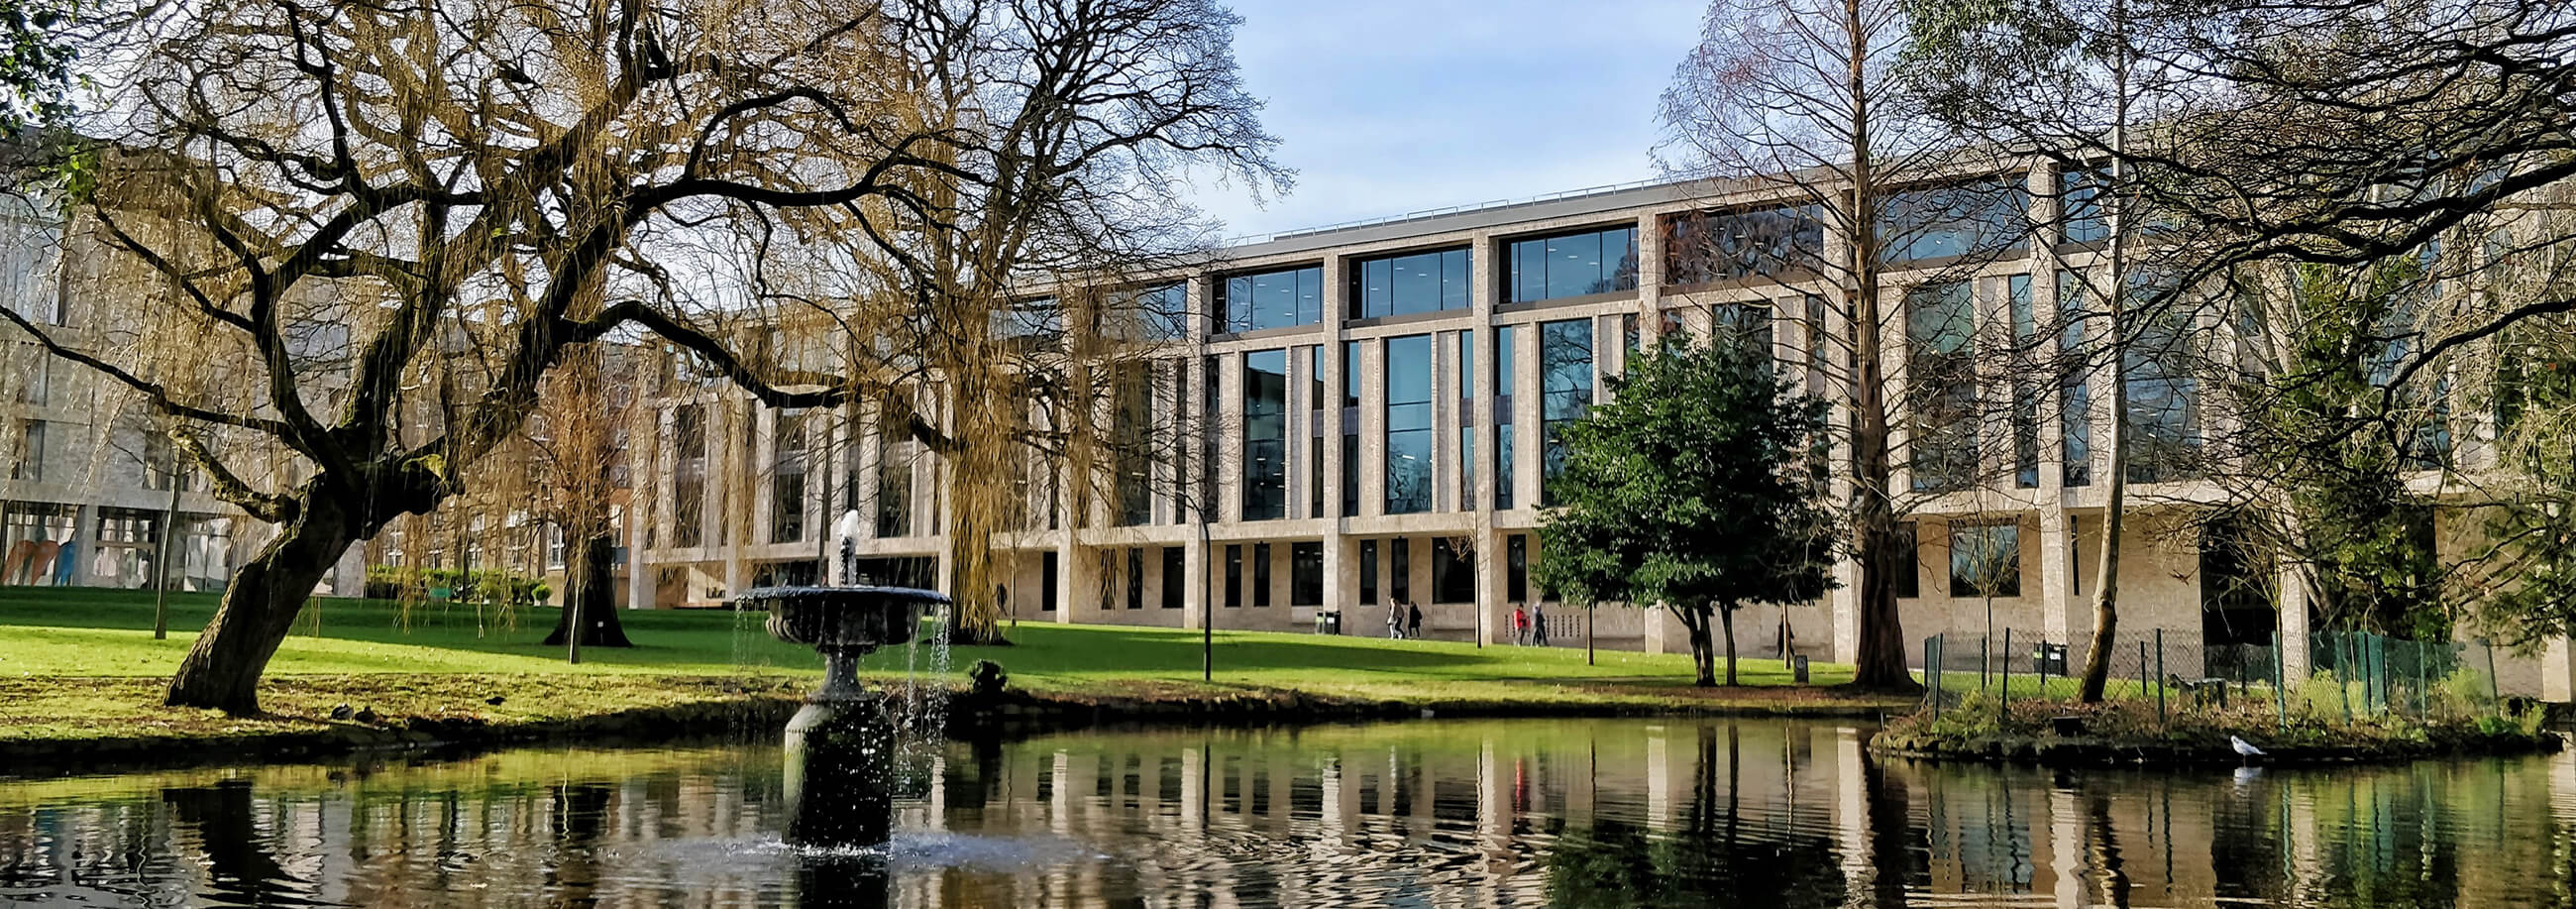 Image - University of Roehampton celebrates opening of new library